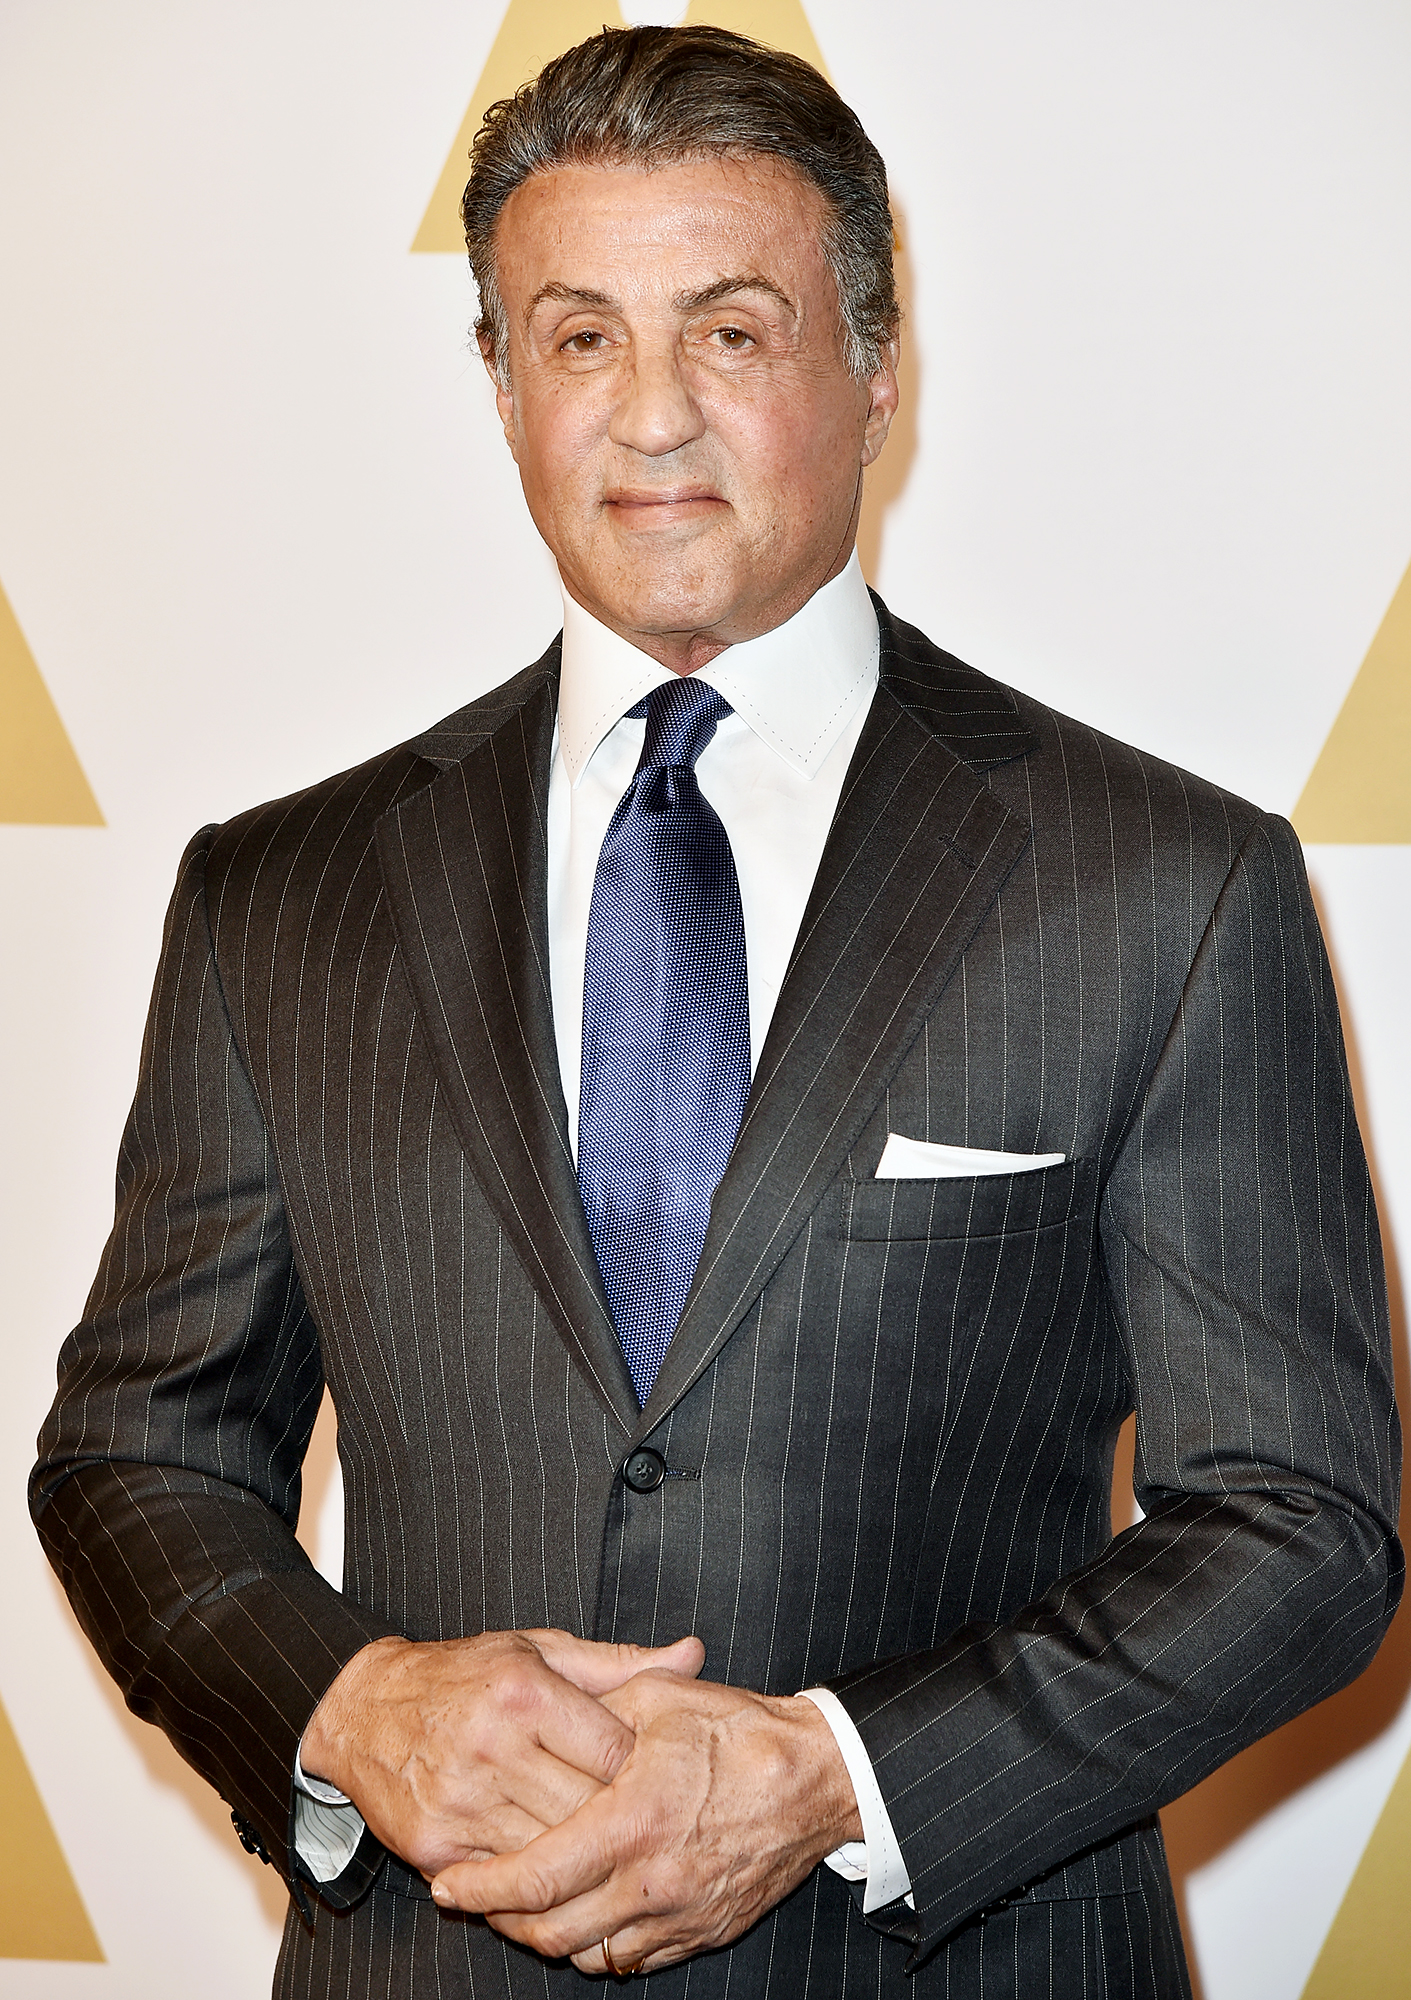 Sylvester Stallone Sexual Assault Case Under Review By LA District Attorney